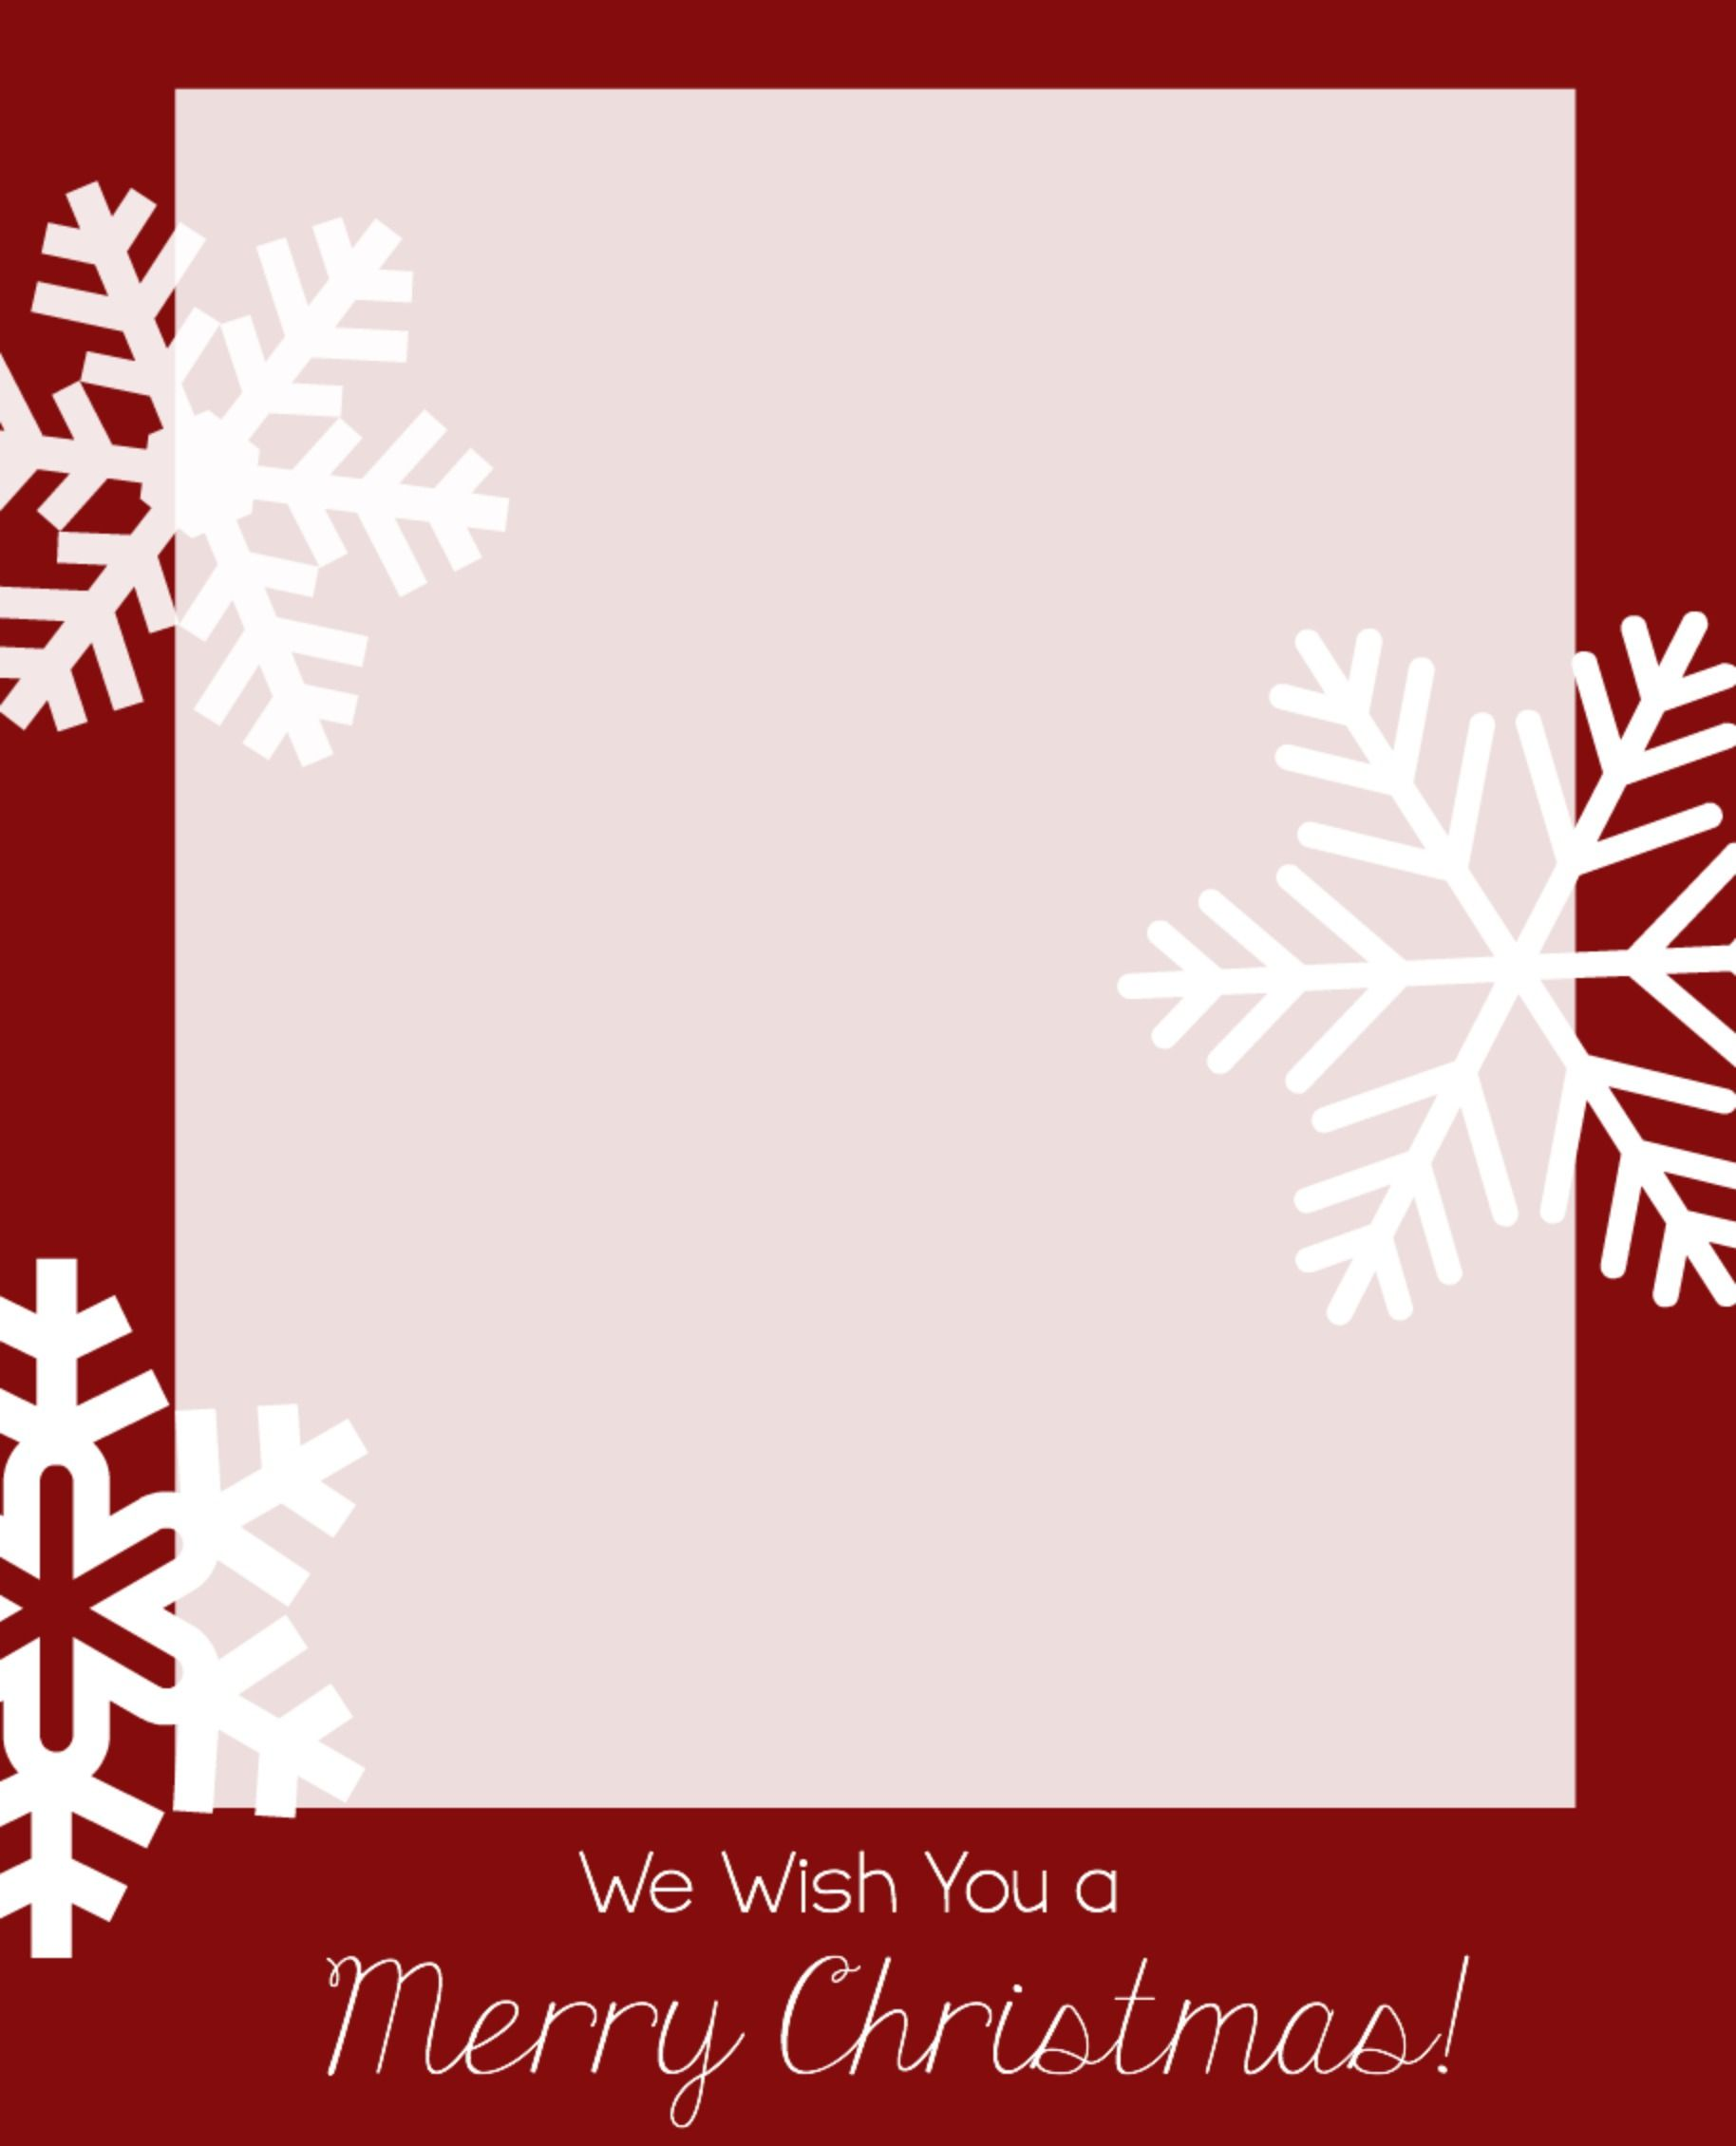 Free Christmas Card Templates | Free christmas card templates ...